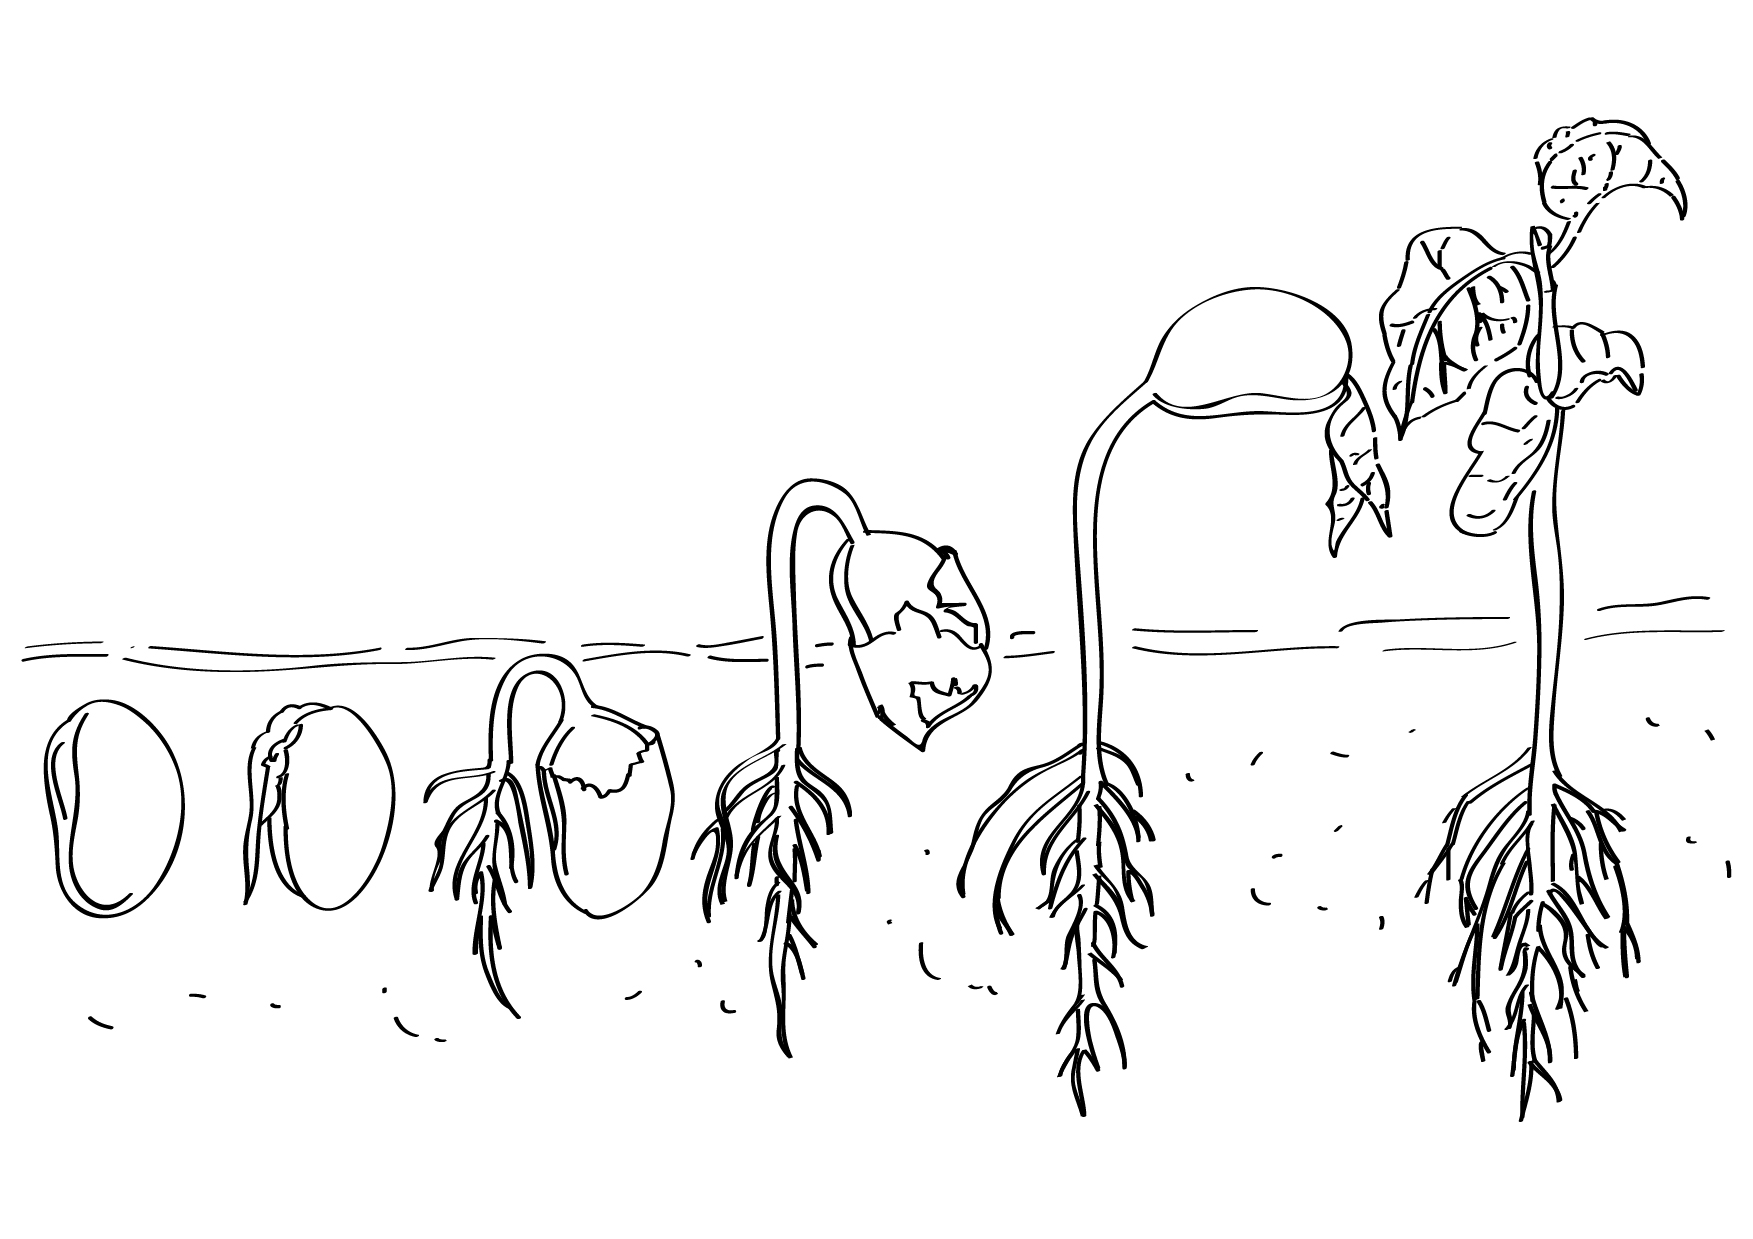 Seed clipart plant life cycle Of a of plant img_0102_eng_evs_life_cycle_non_living_organism